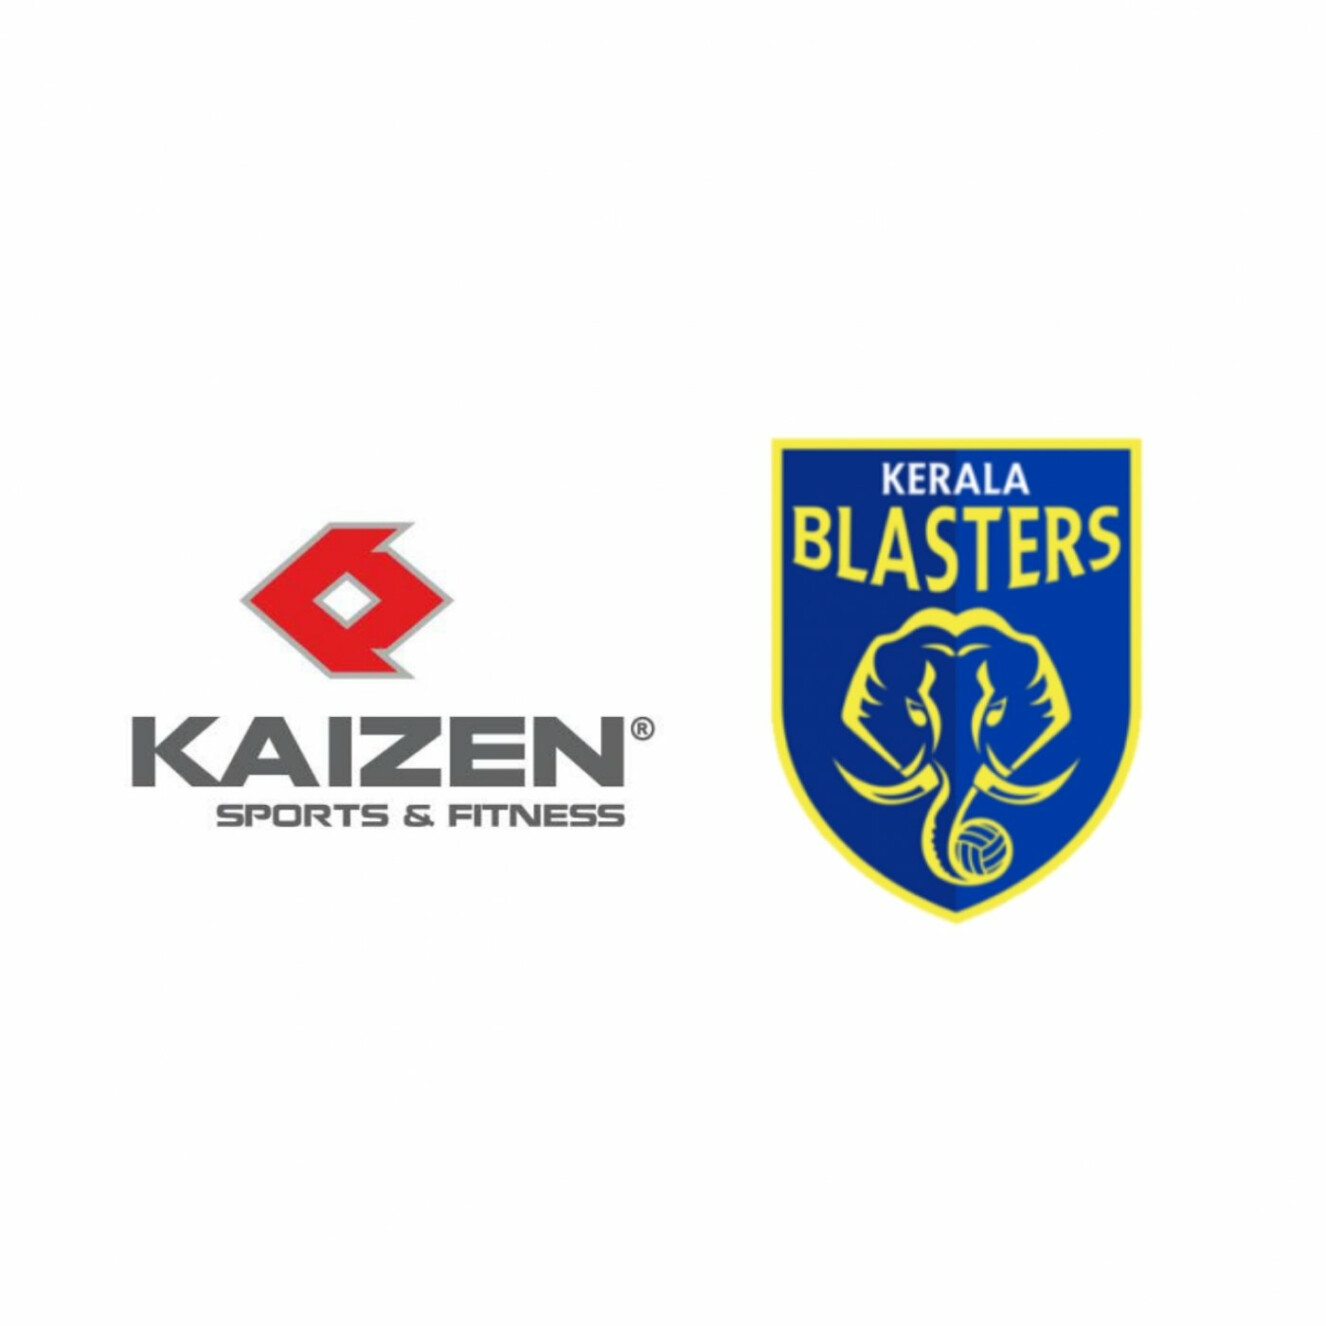 Kaizen Sports becomes the new kit sponsors of Kerala Blasters